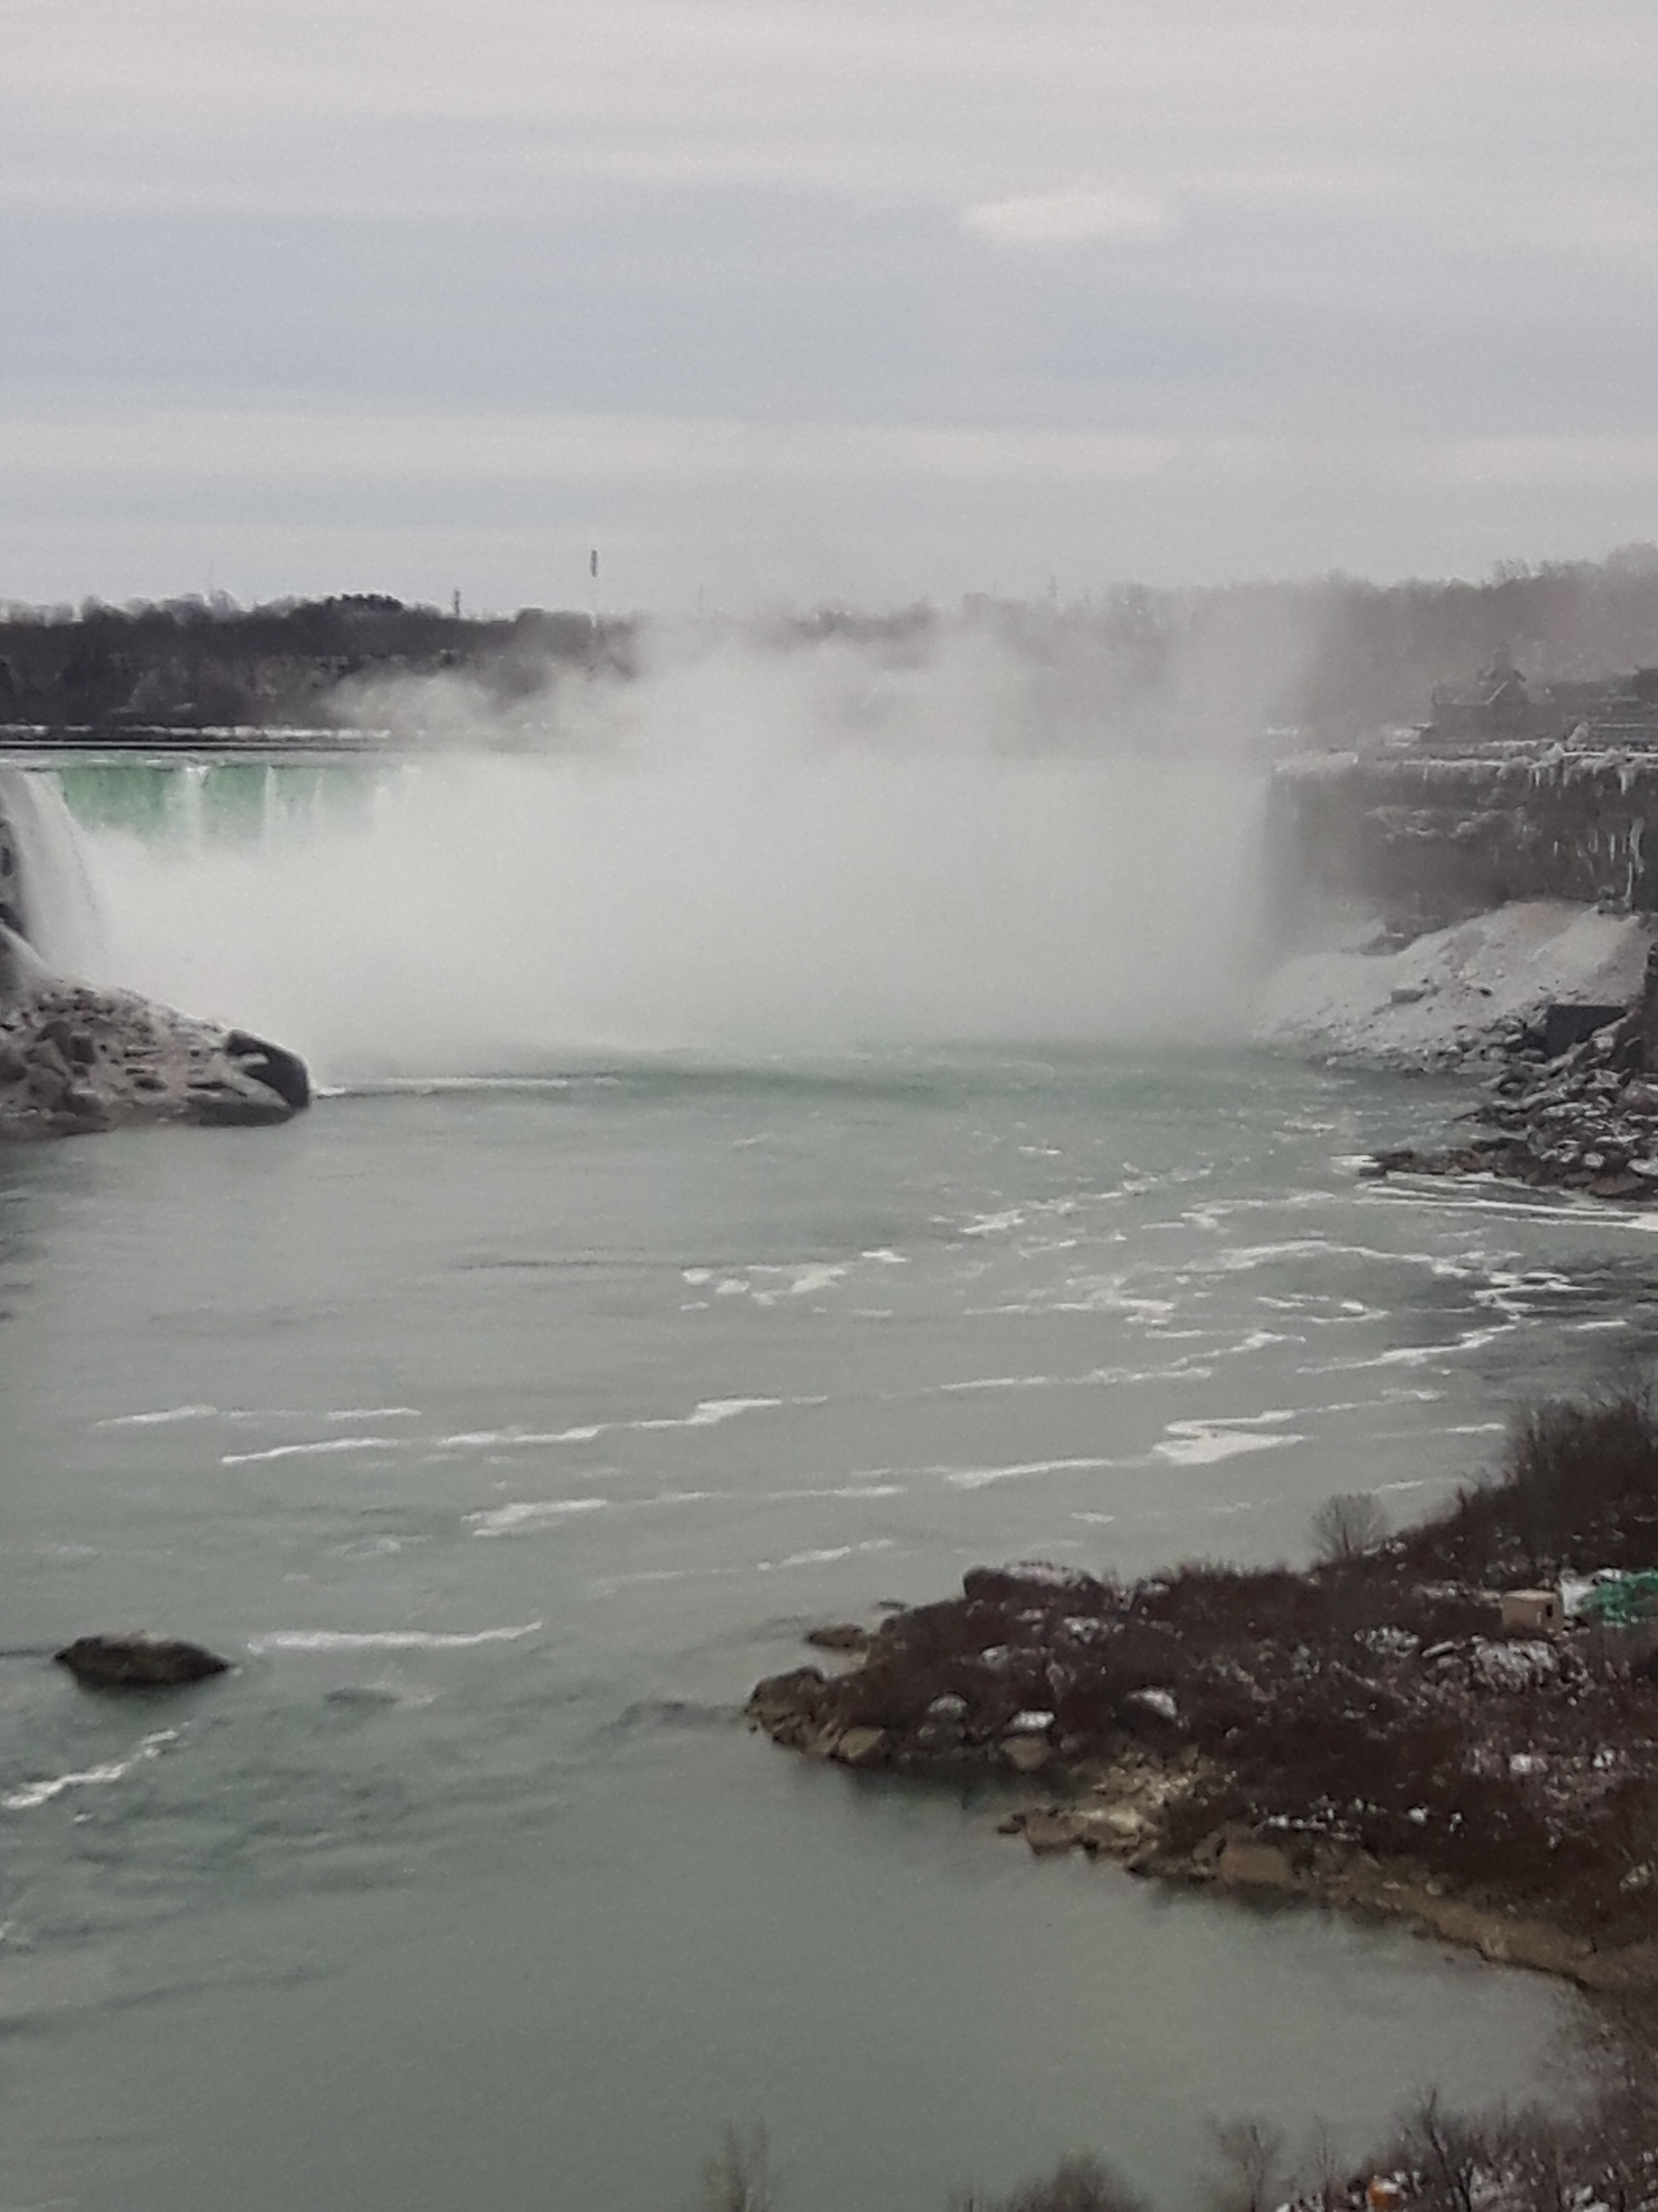 the-canadian-falls-from-the-canadian-side-of-niagara-falls